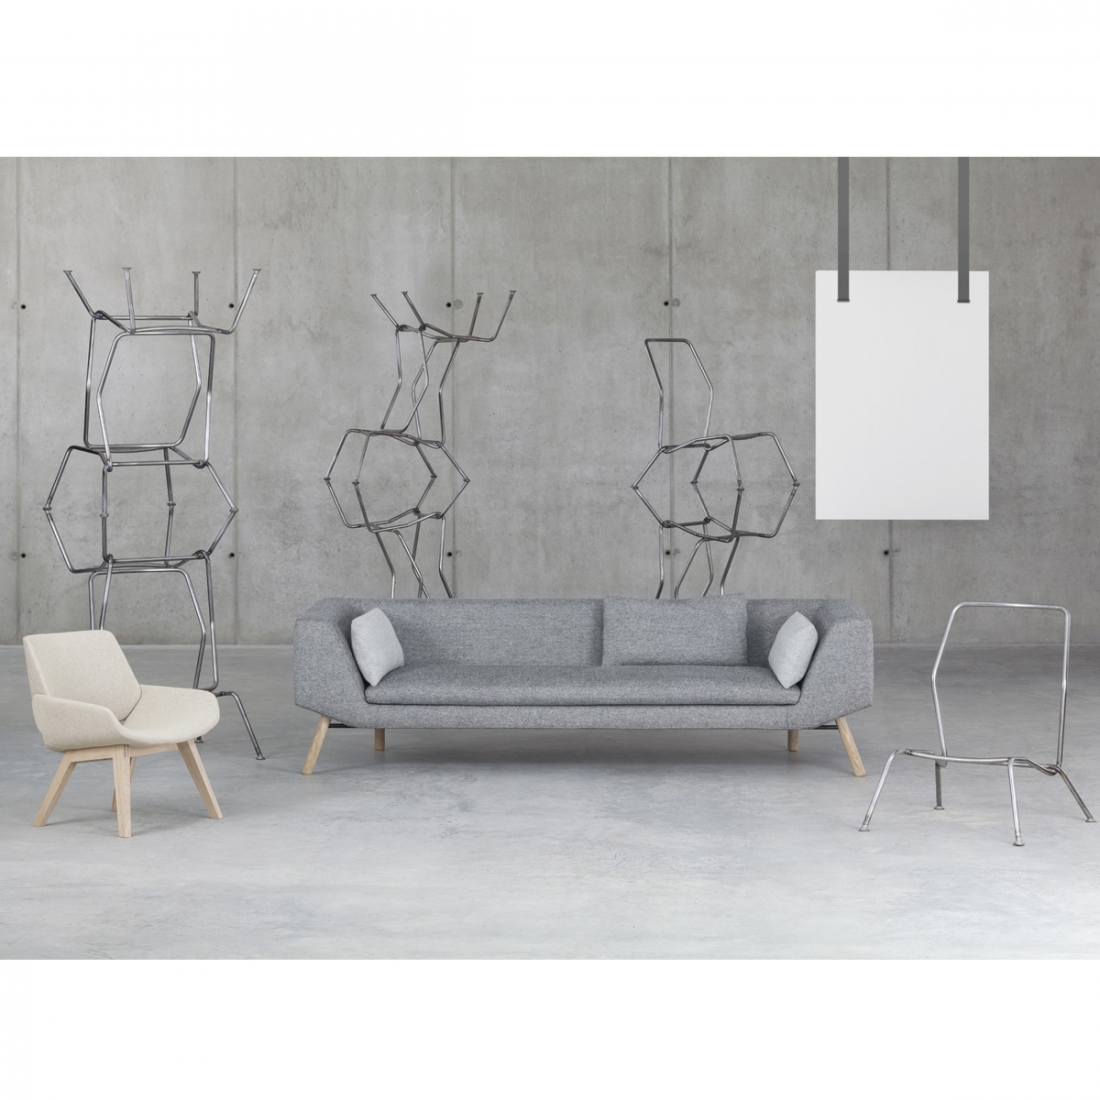 Sofa 2 places combine prostoria zendart design - Canape deux places design ...